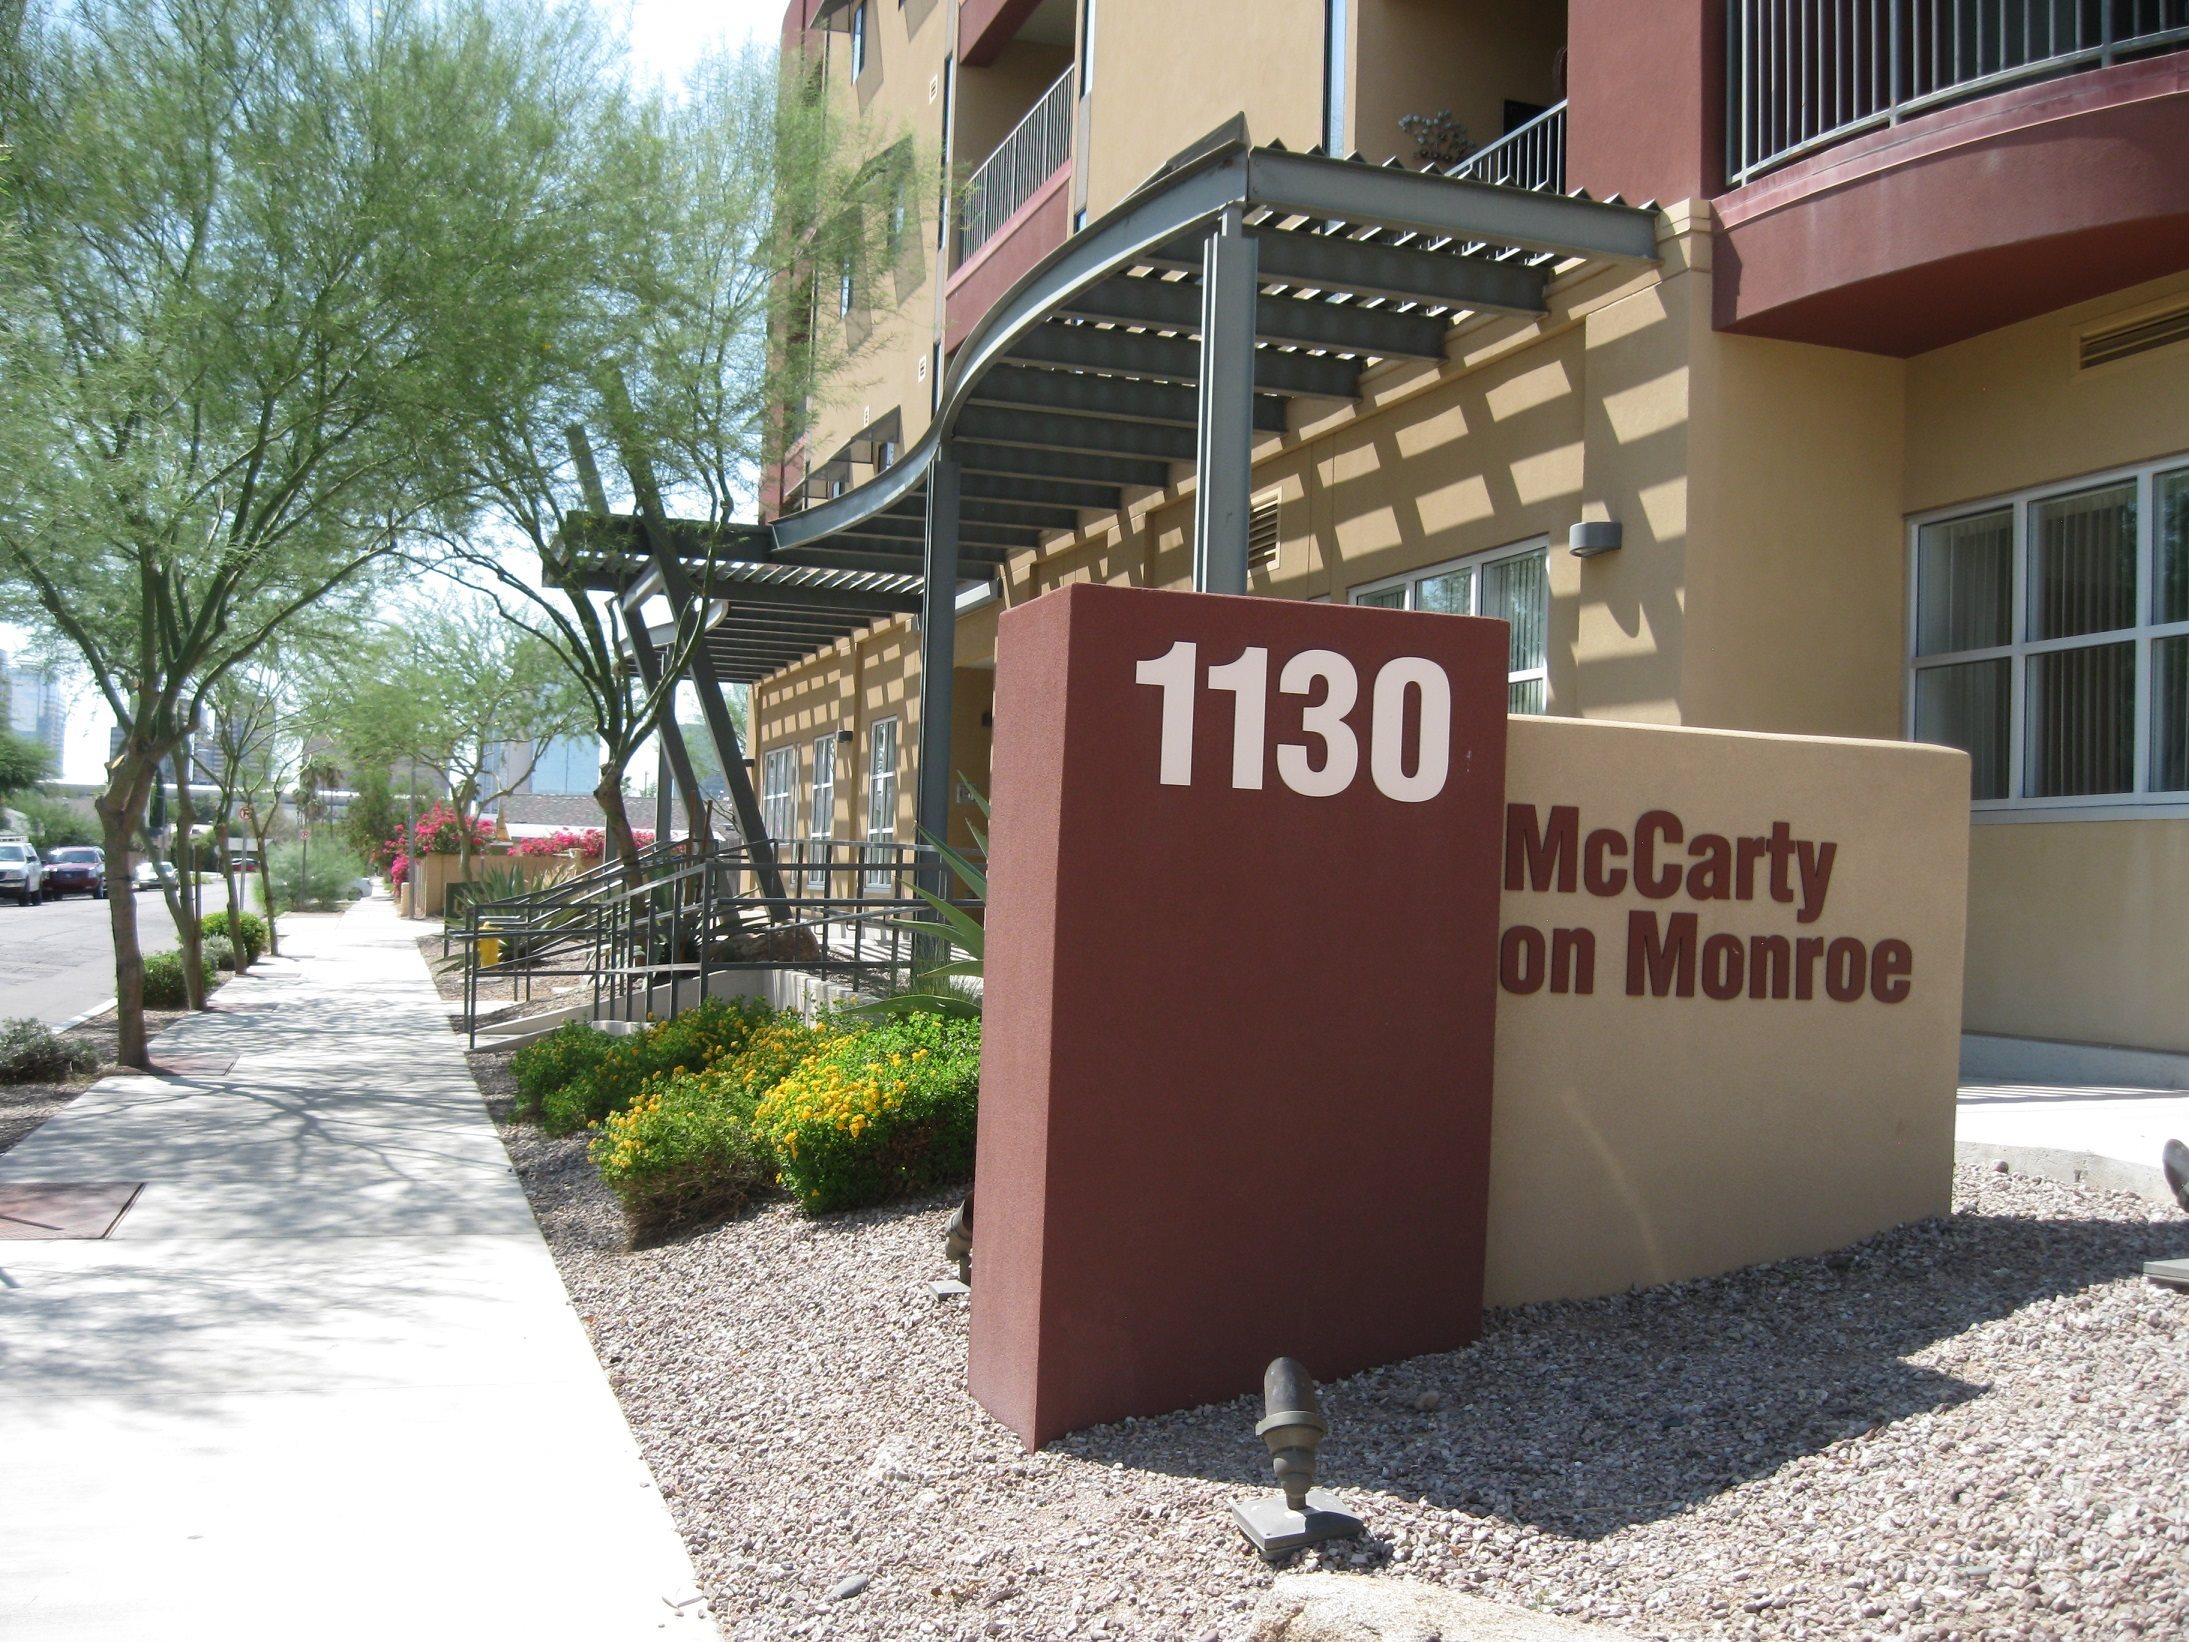 Image of Mccarty on Monroe in Phoenix, Arizona